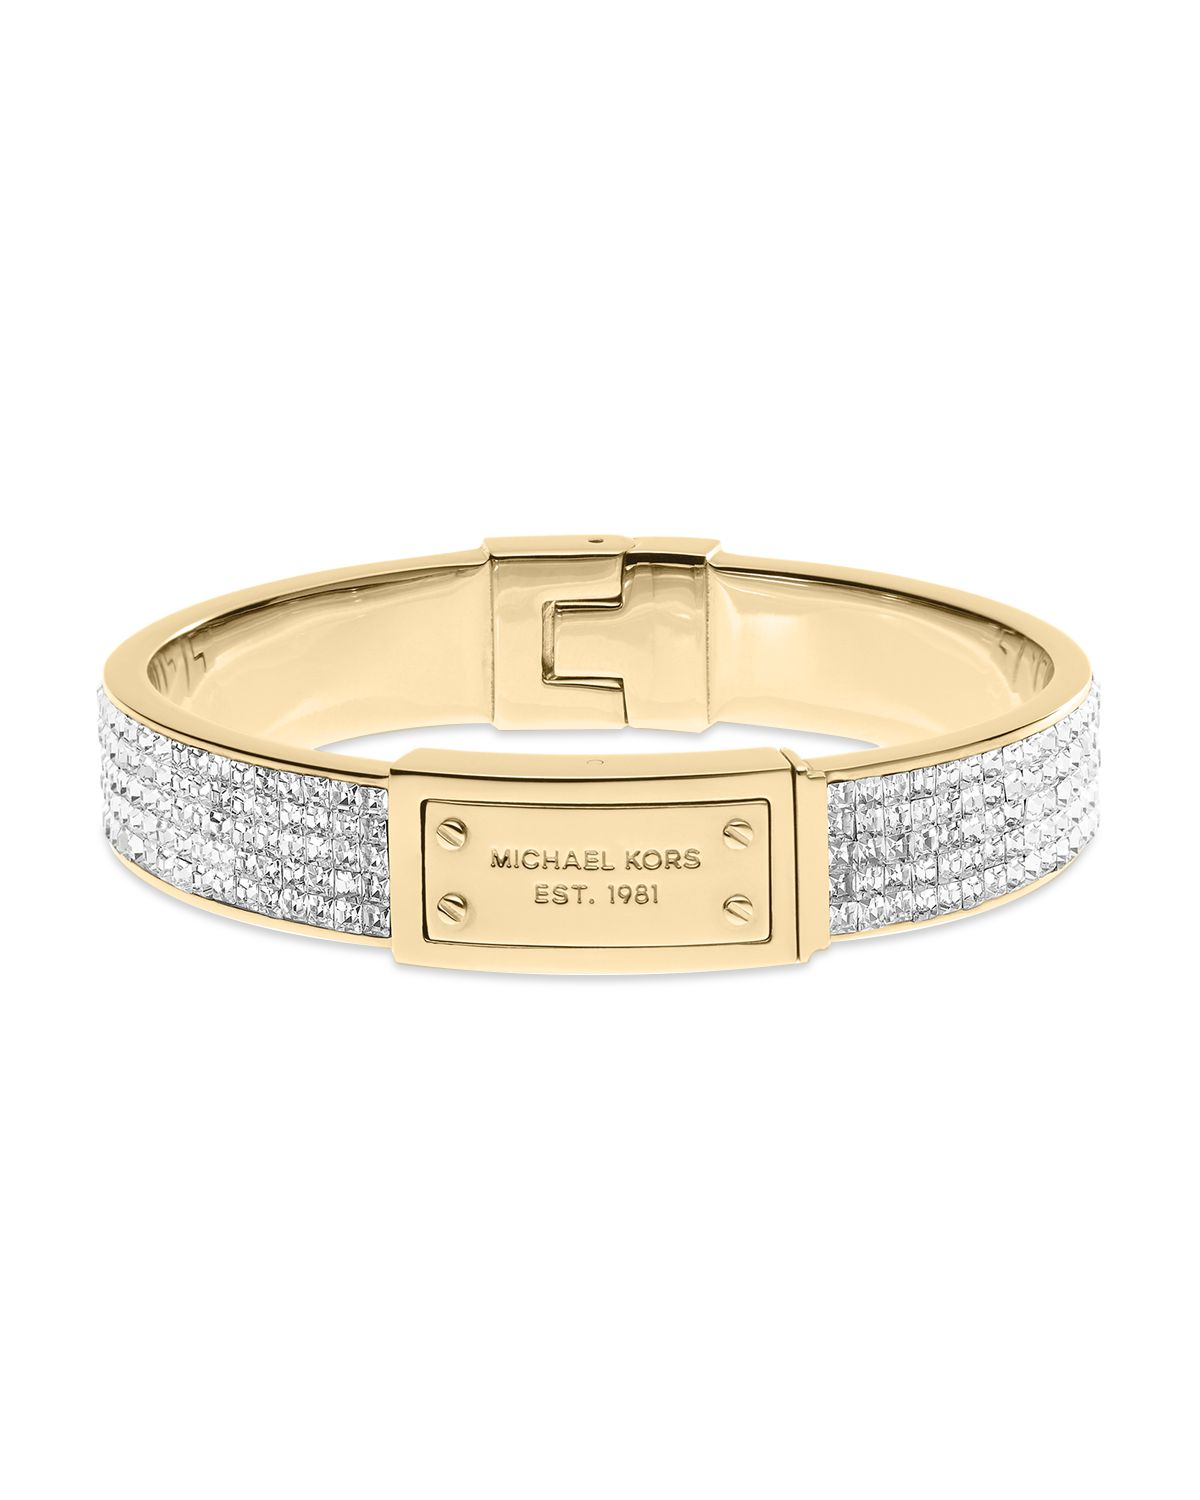 michael kors square pave plaque bangle bracelet in white gold clear lyst. Black Bedroom Furniture Sets. Home Design Ideas